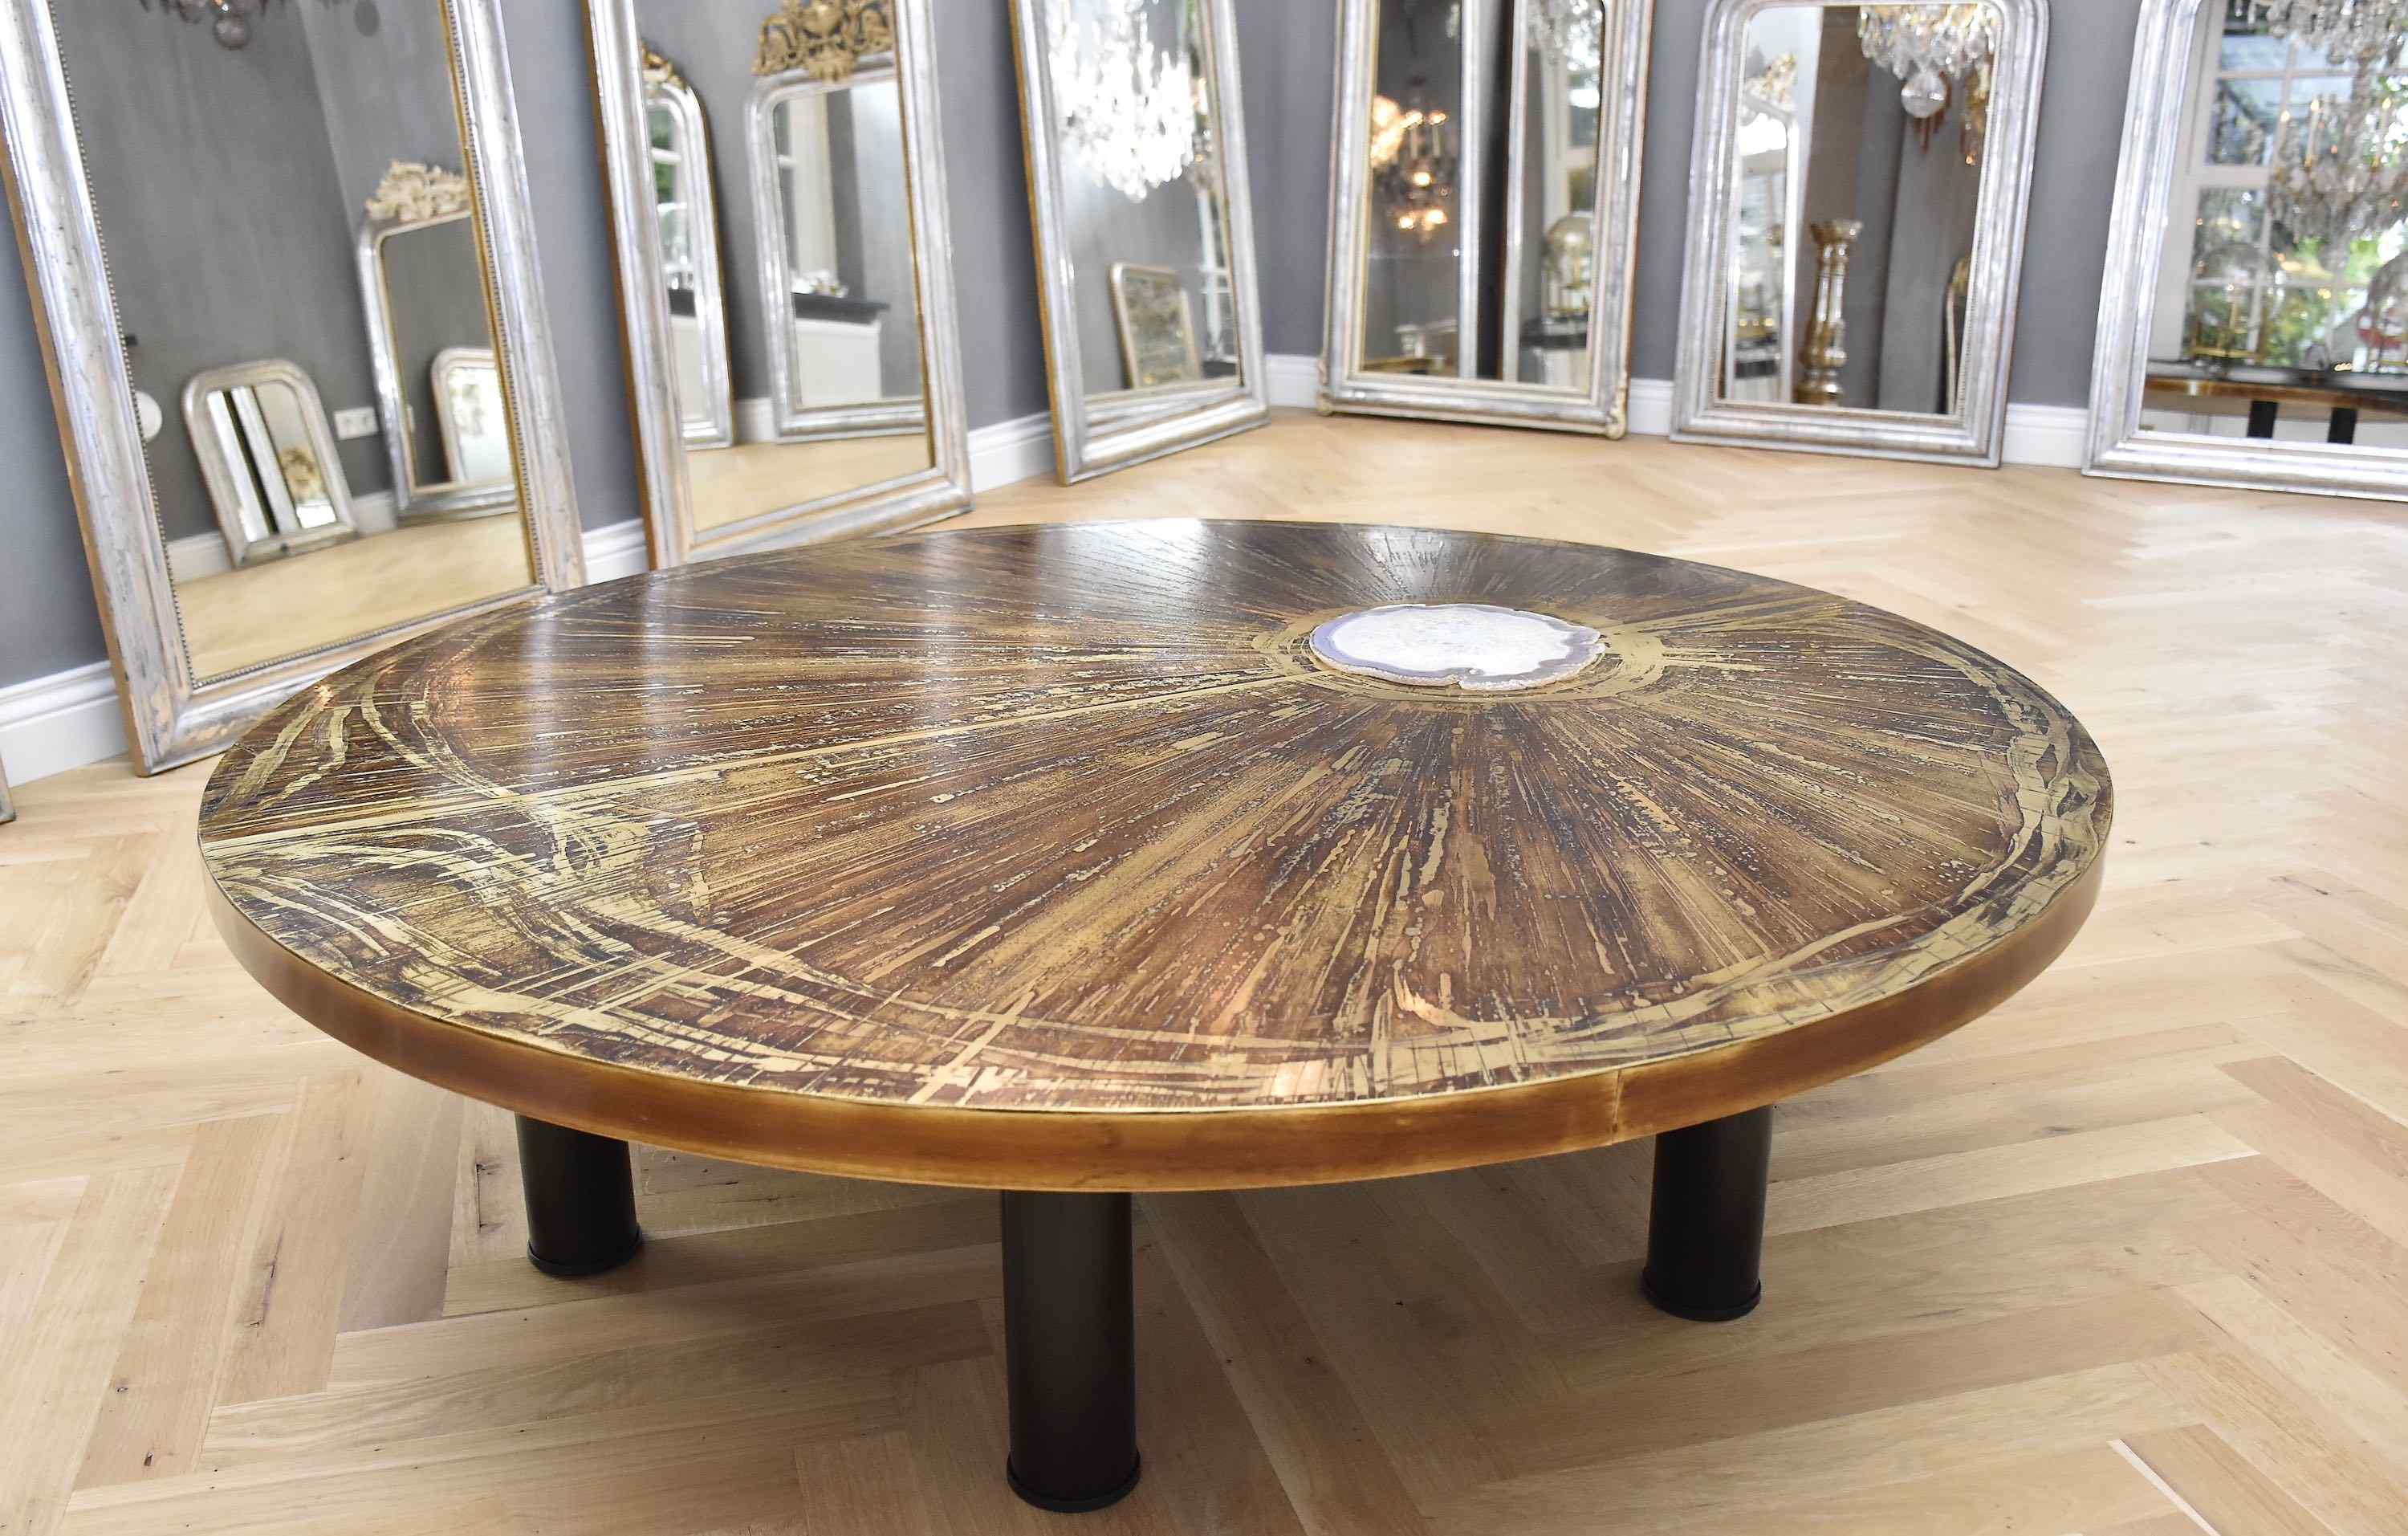 An exceptional and unique coffee table by Marc D'Haenens